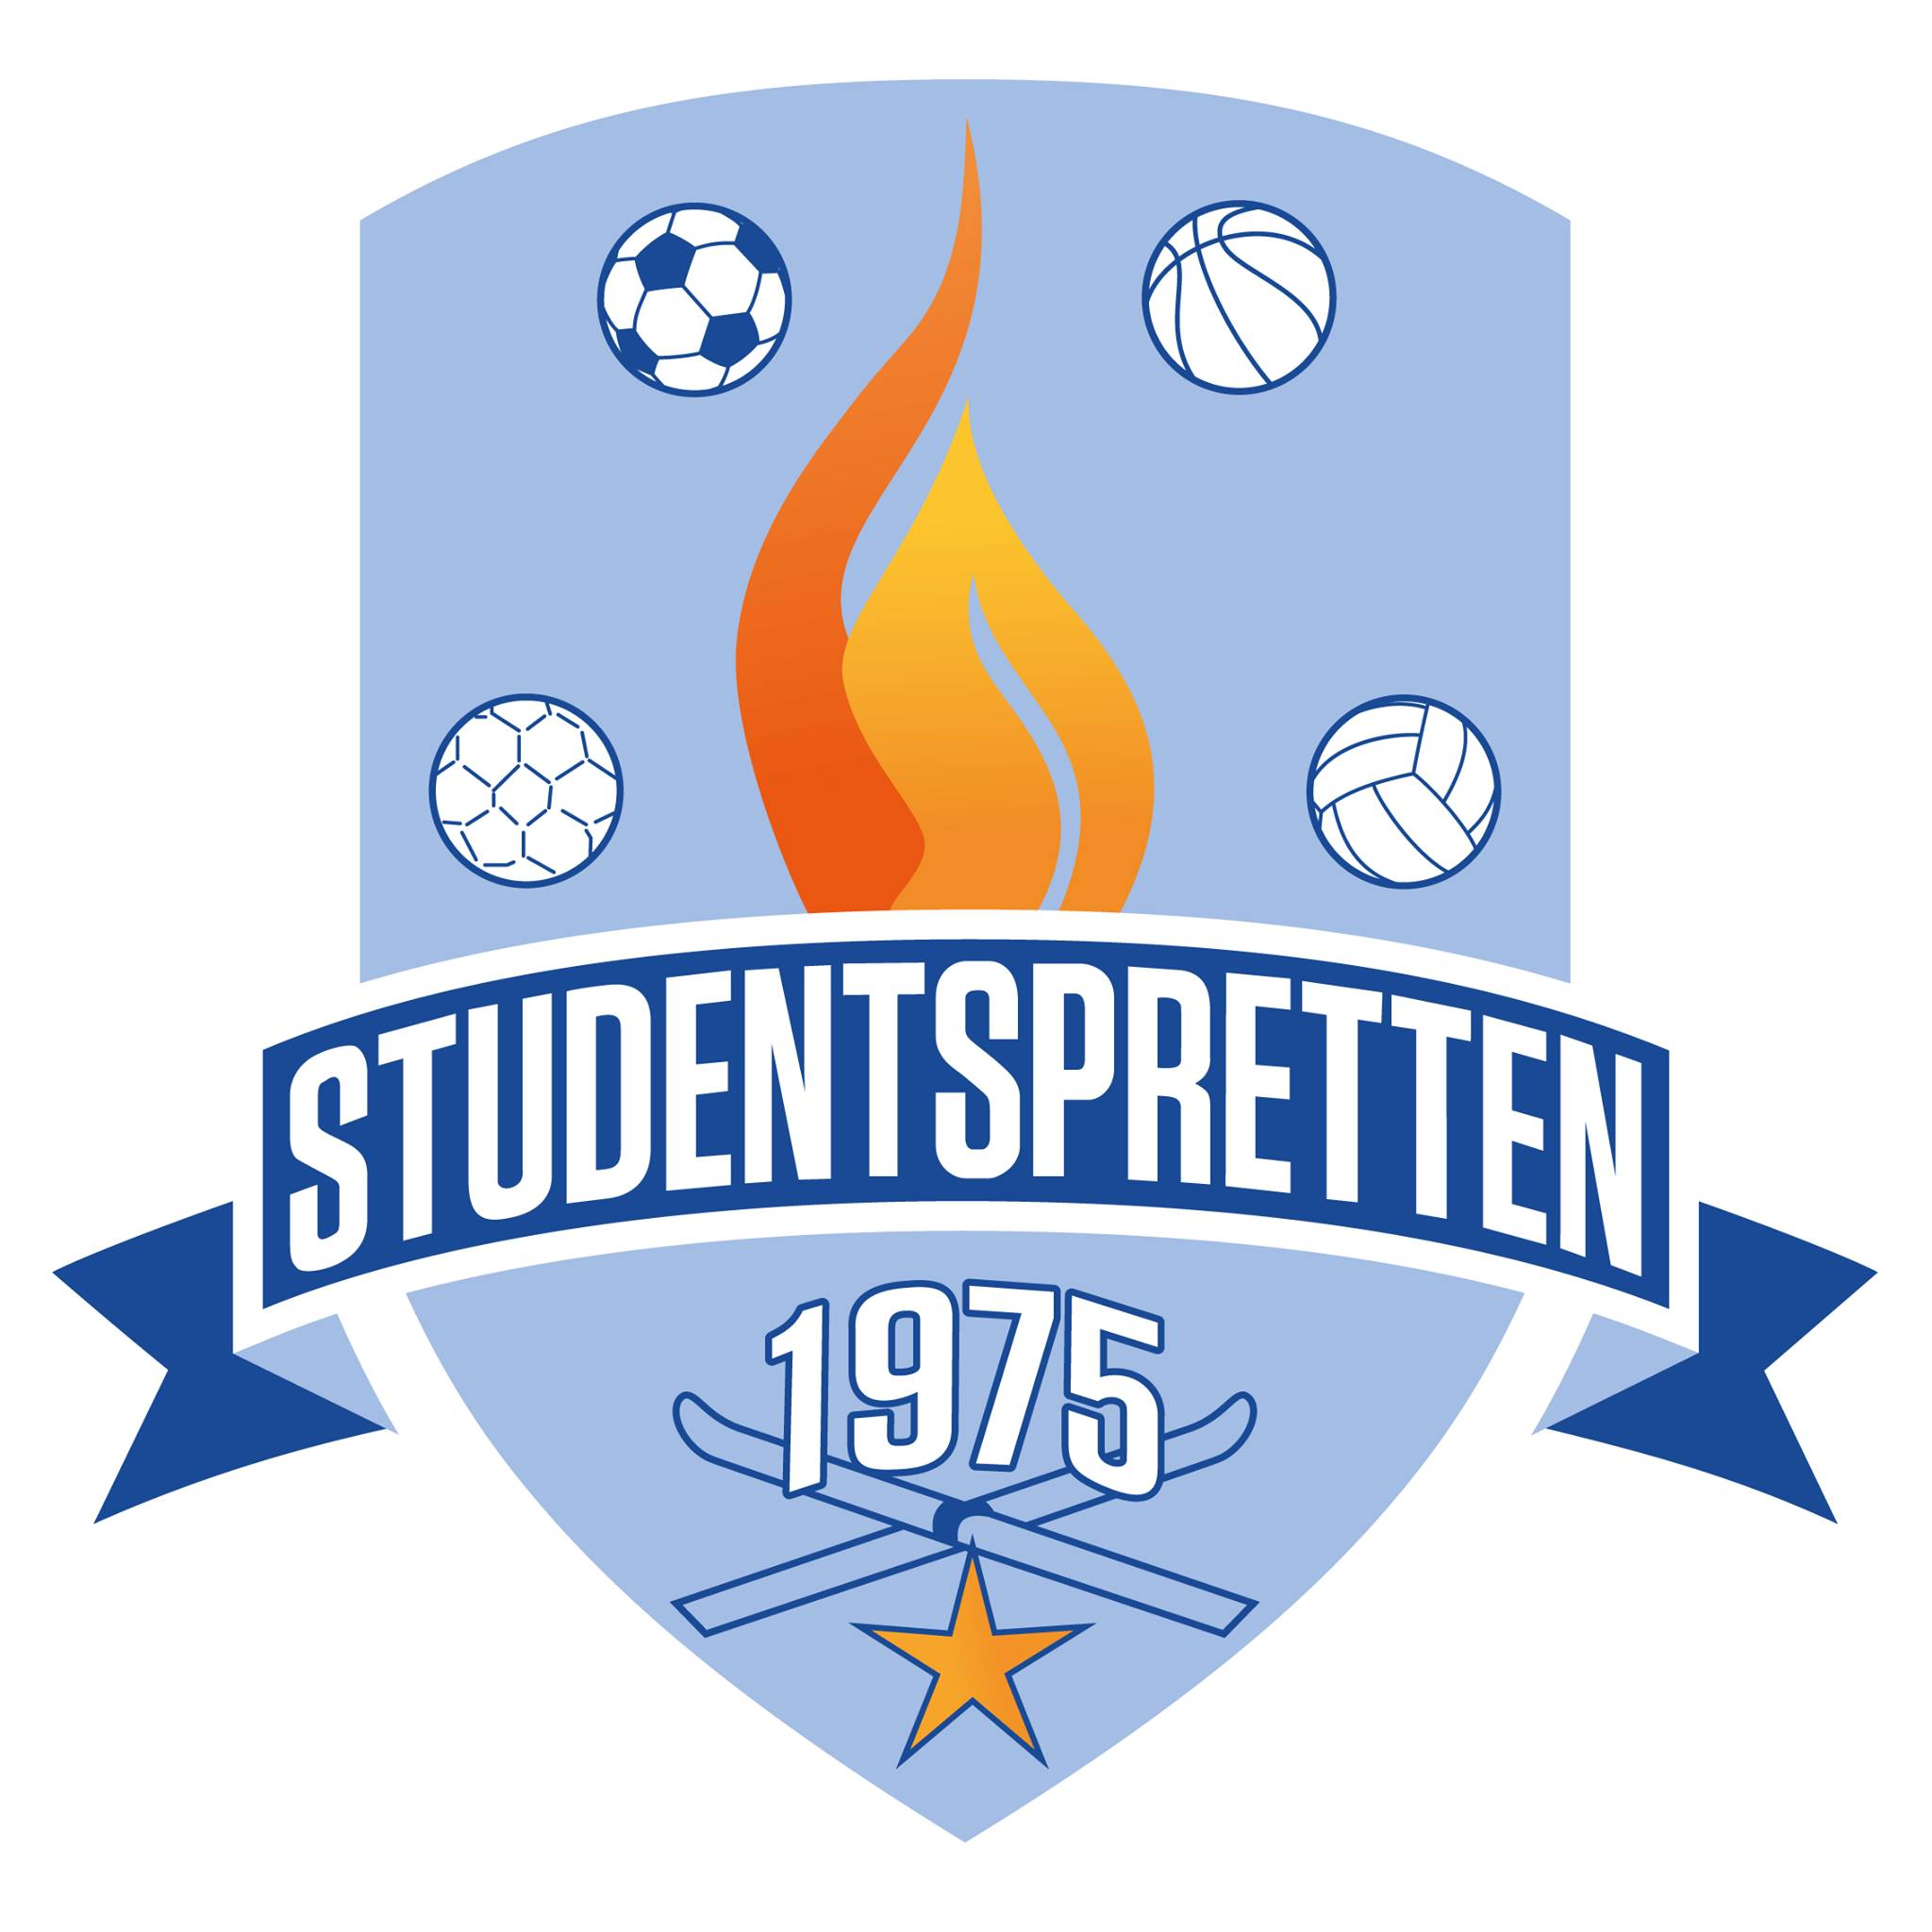 https://studentspretten.files.wordpress.com/2017/01/emblem-studentspretten-1.jpg